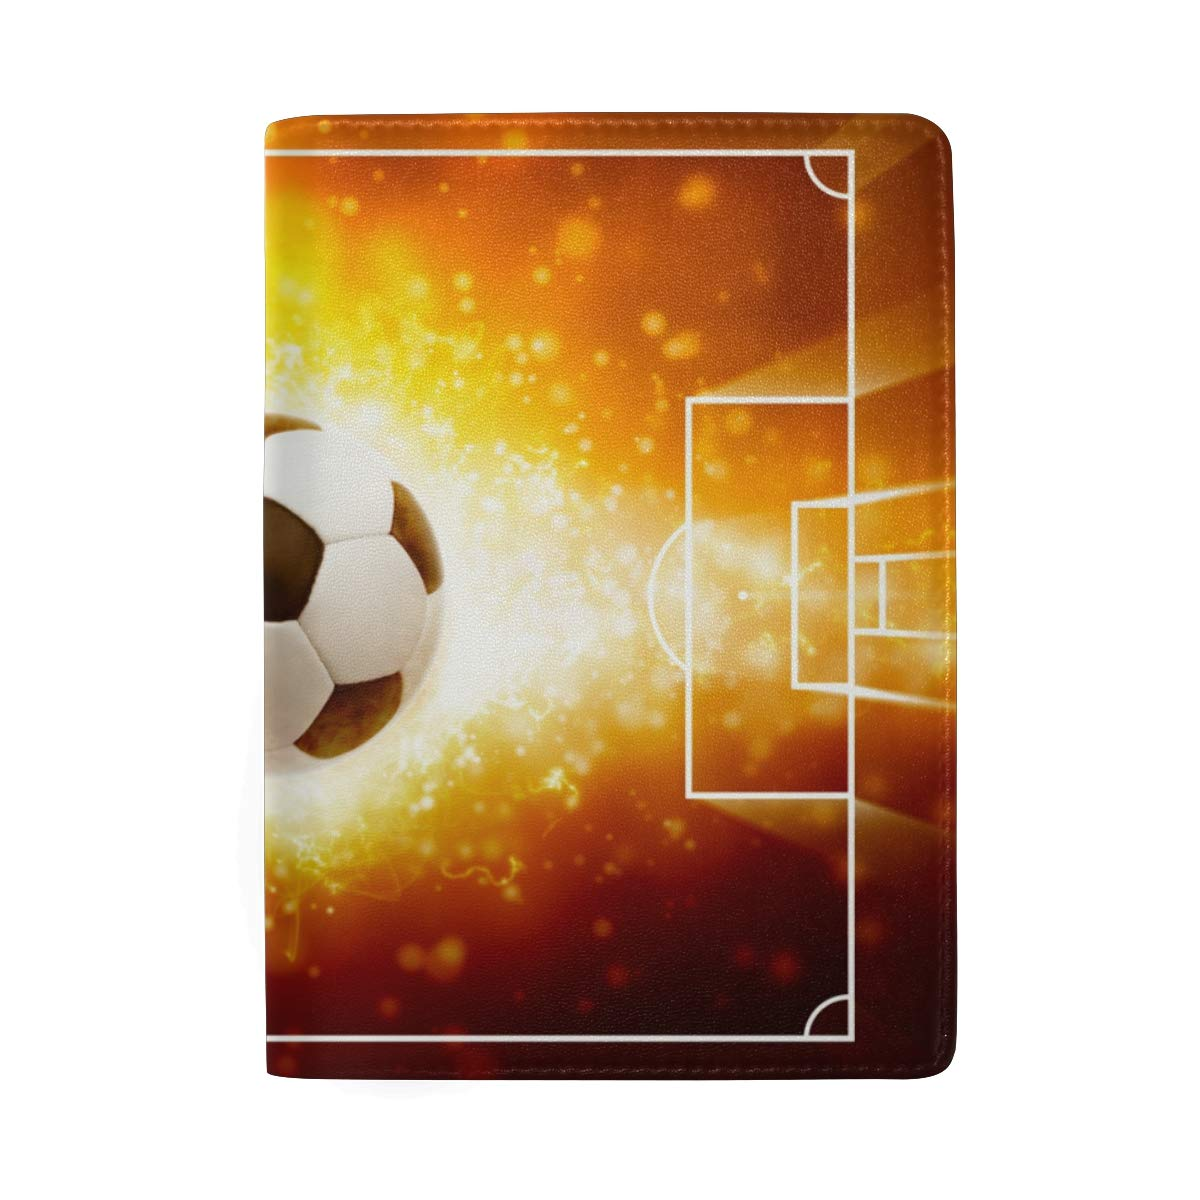 Burning Soccer Ball Leather Passport Holder Cover Case Protector for Men Women Travel with Slots